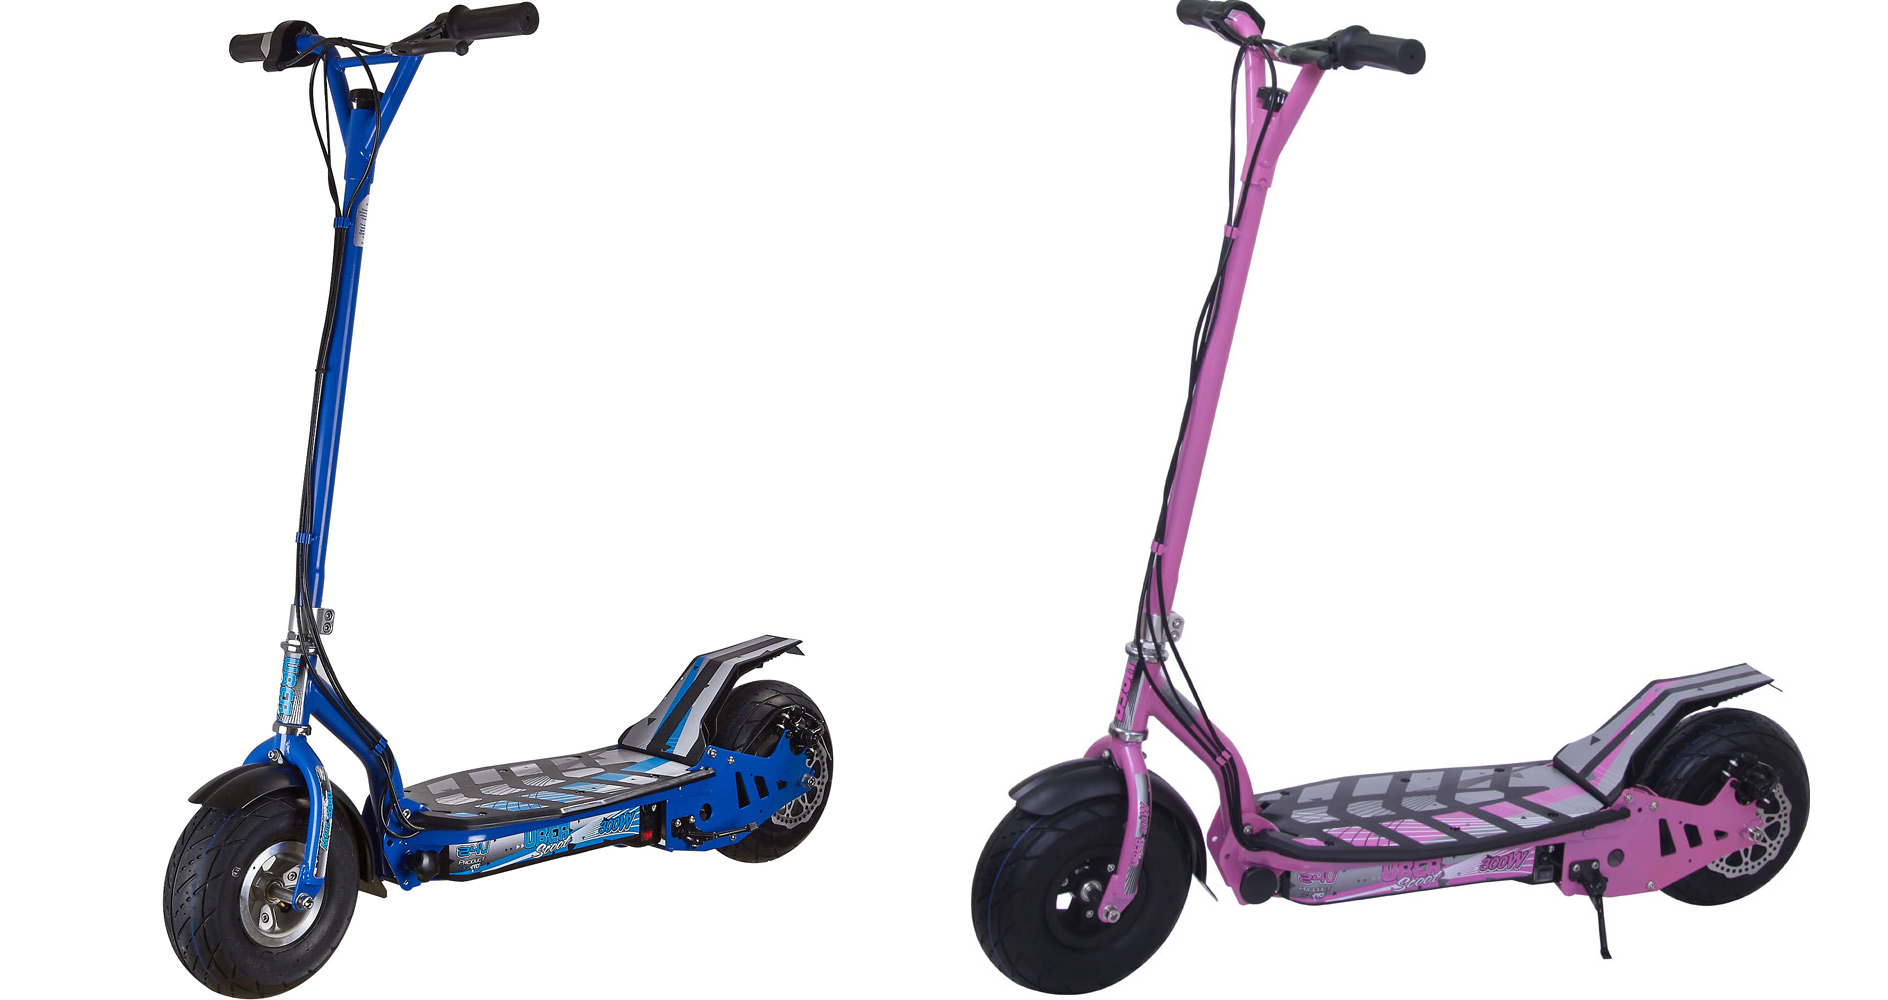 300 Watt 24 Volt Comp Electric Scooter For Children And Adults